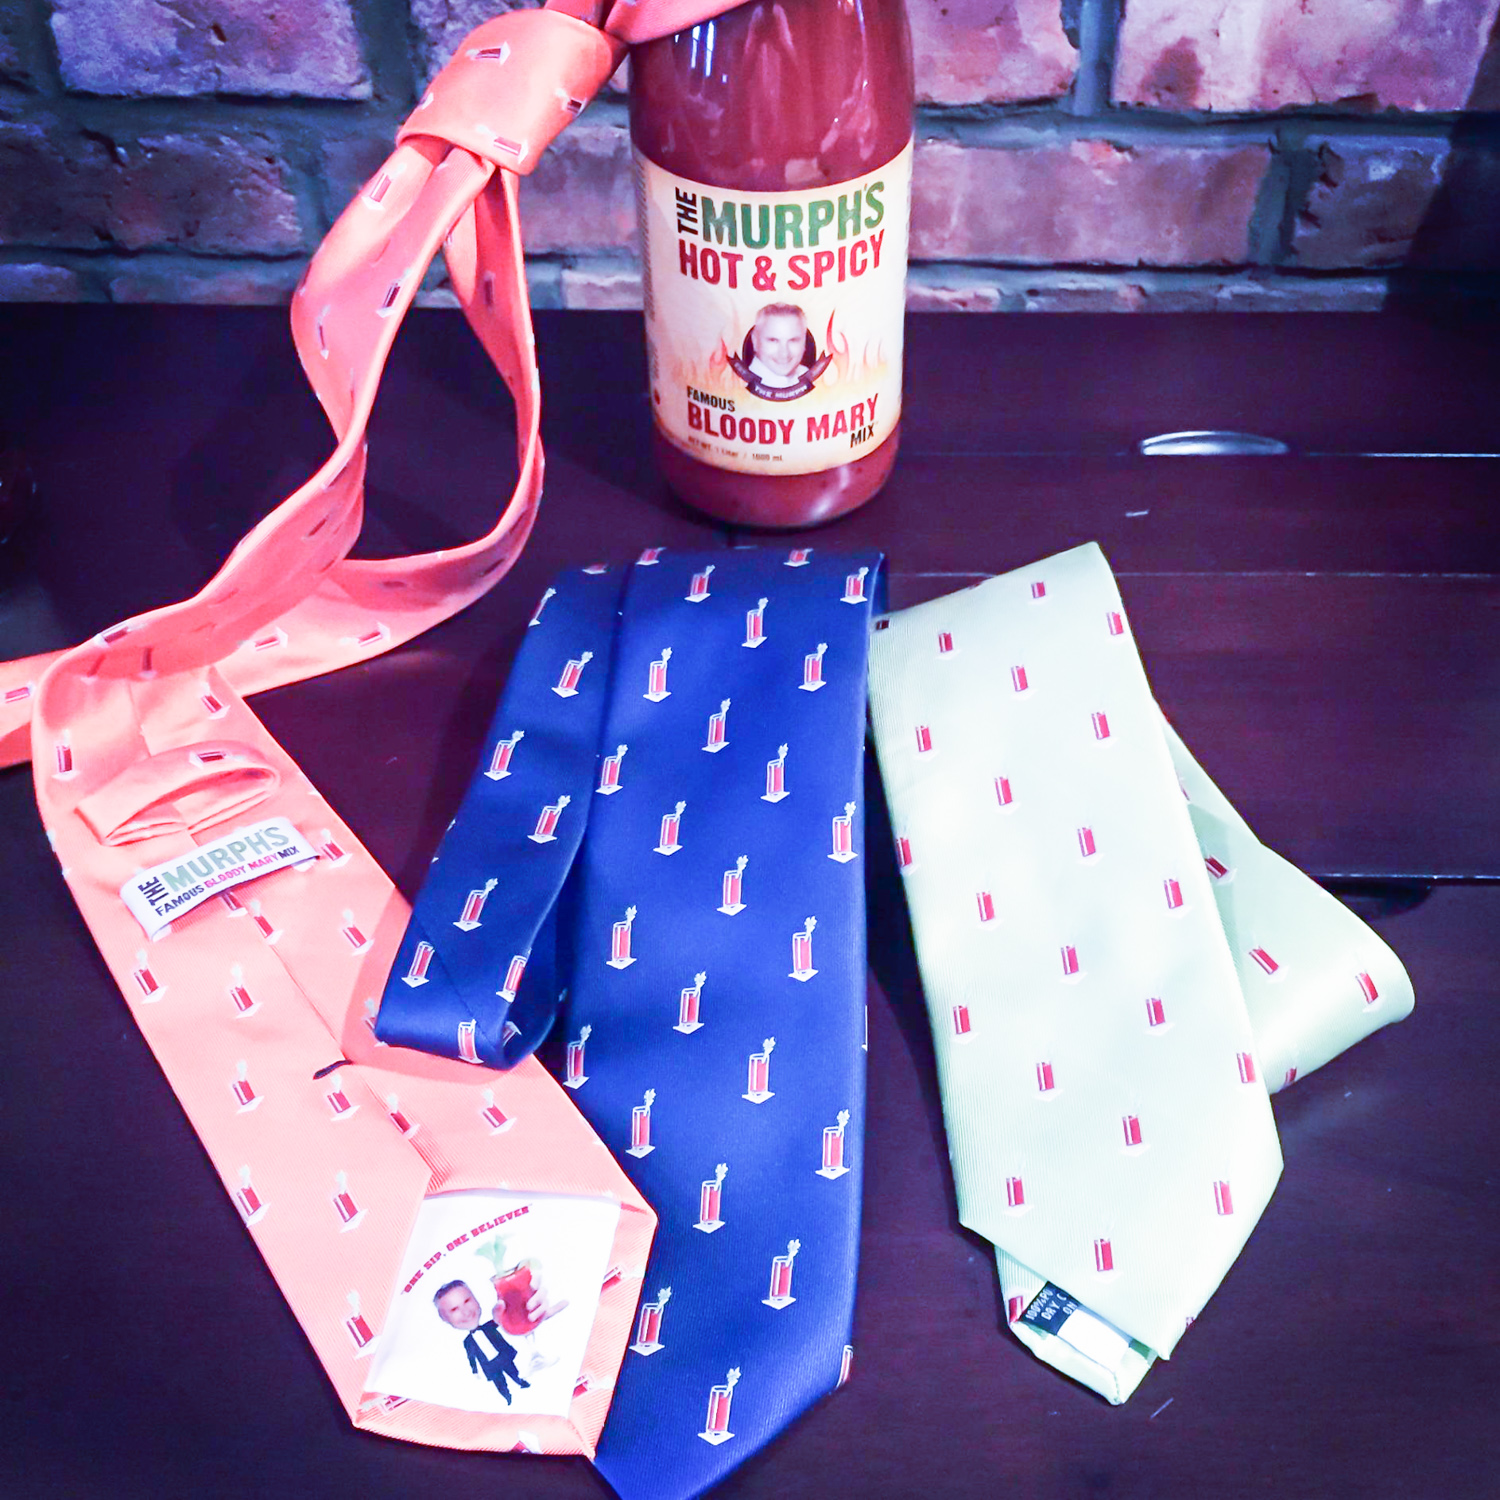 Murph's Famous Bloody Mary Tie